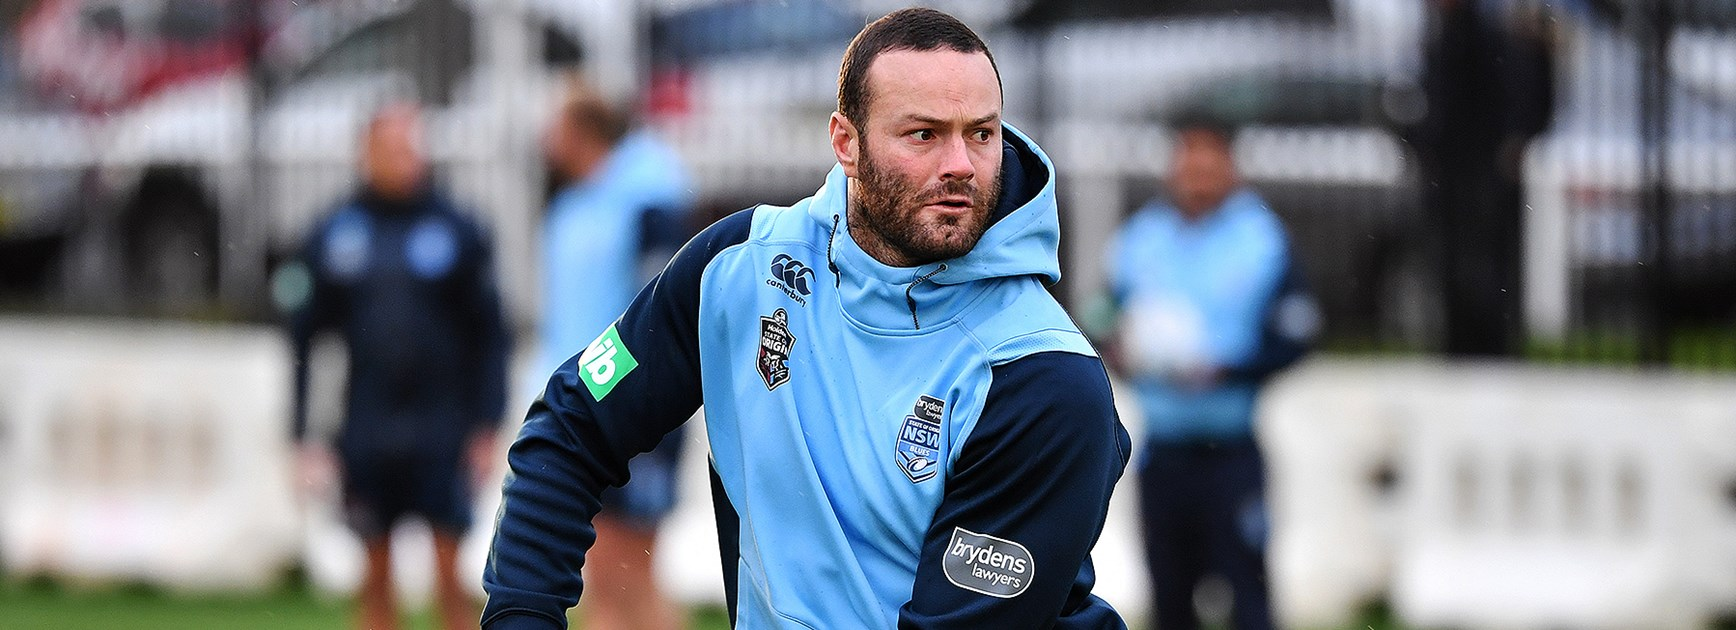 'Origin takes you to places you didn't think you could go': Cordner